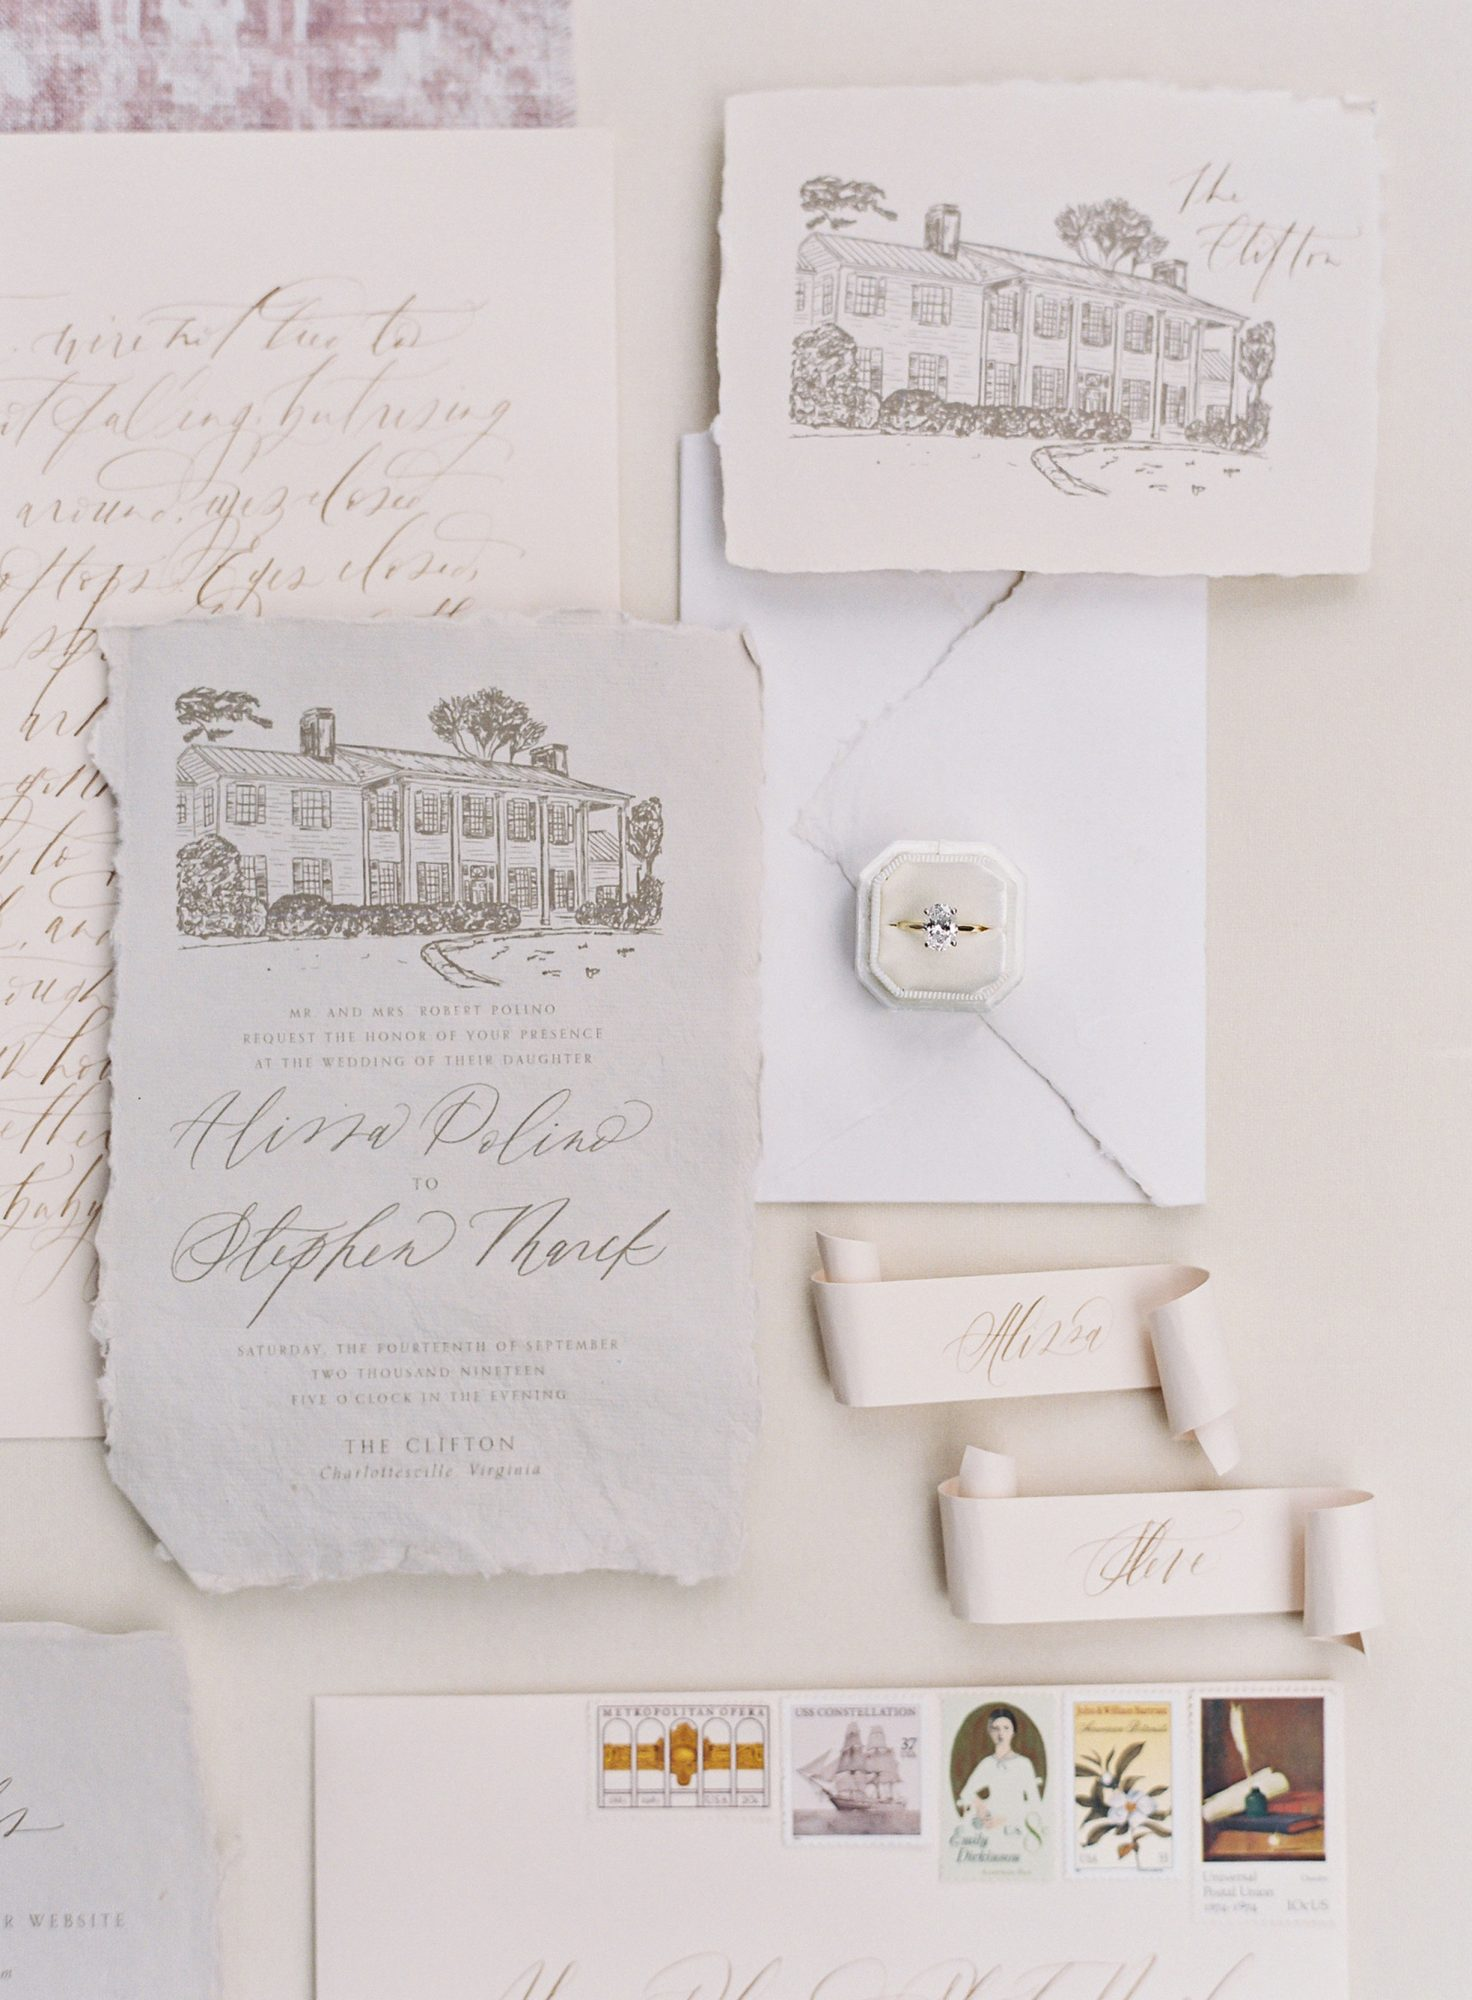 Wedding invitations digitally printed on handmade paper